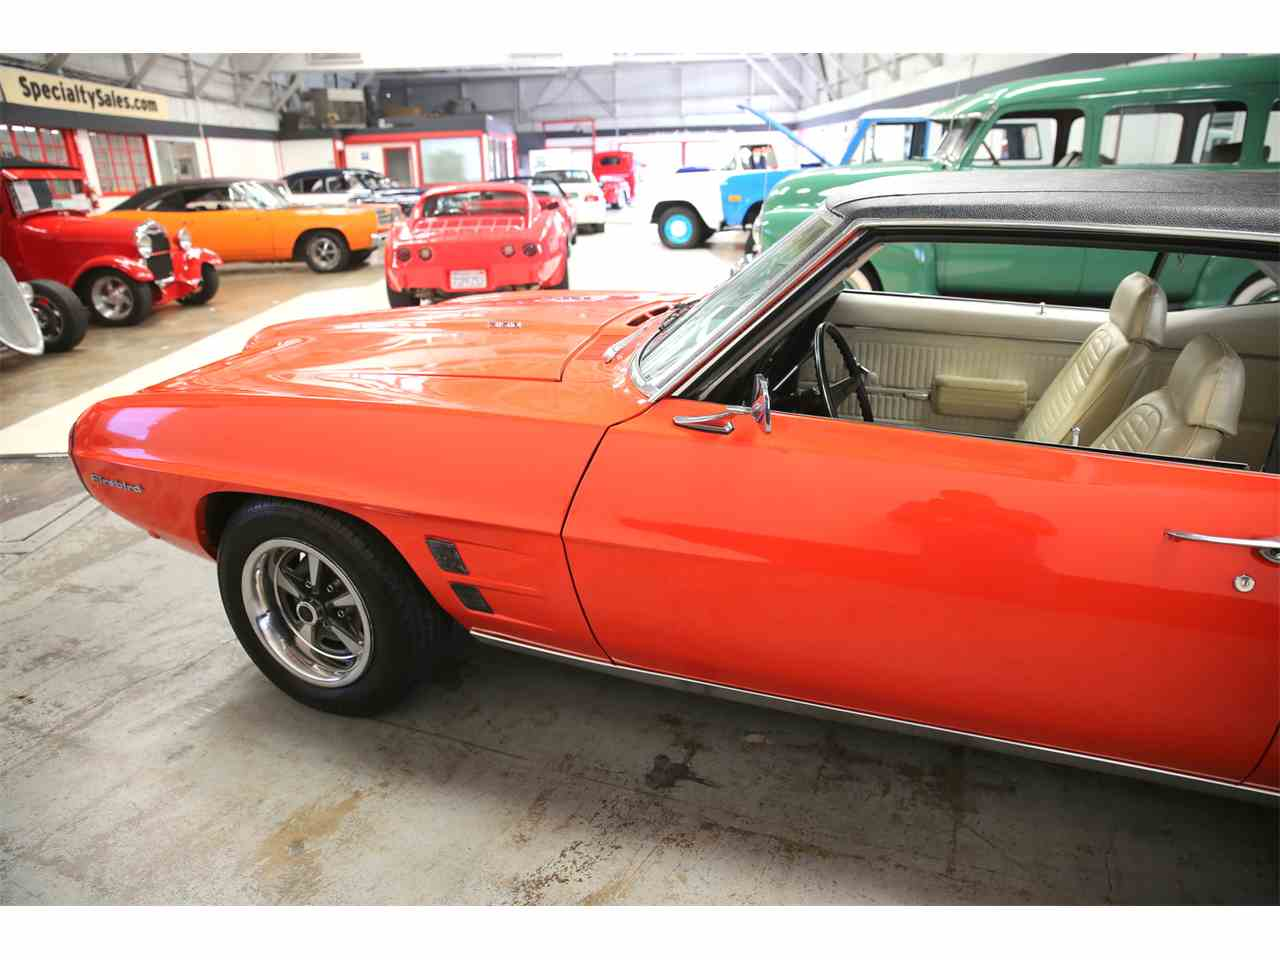 Large Picture of Classic '69 Firebird located in Fairfield California - $22,490.00 - LGC5